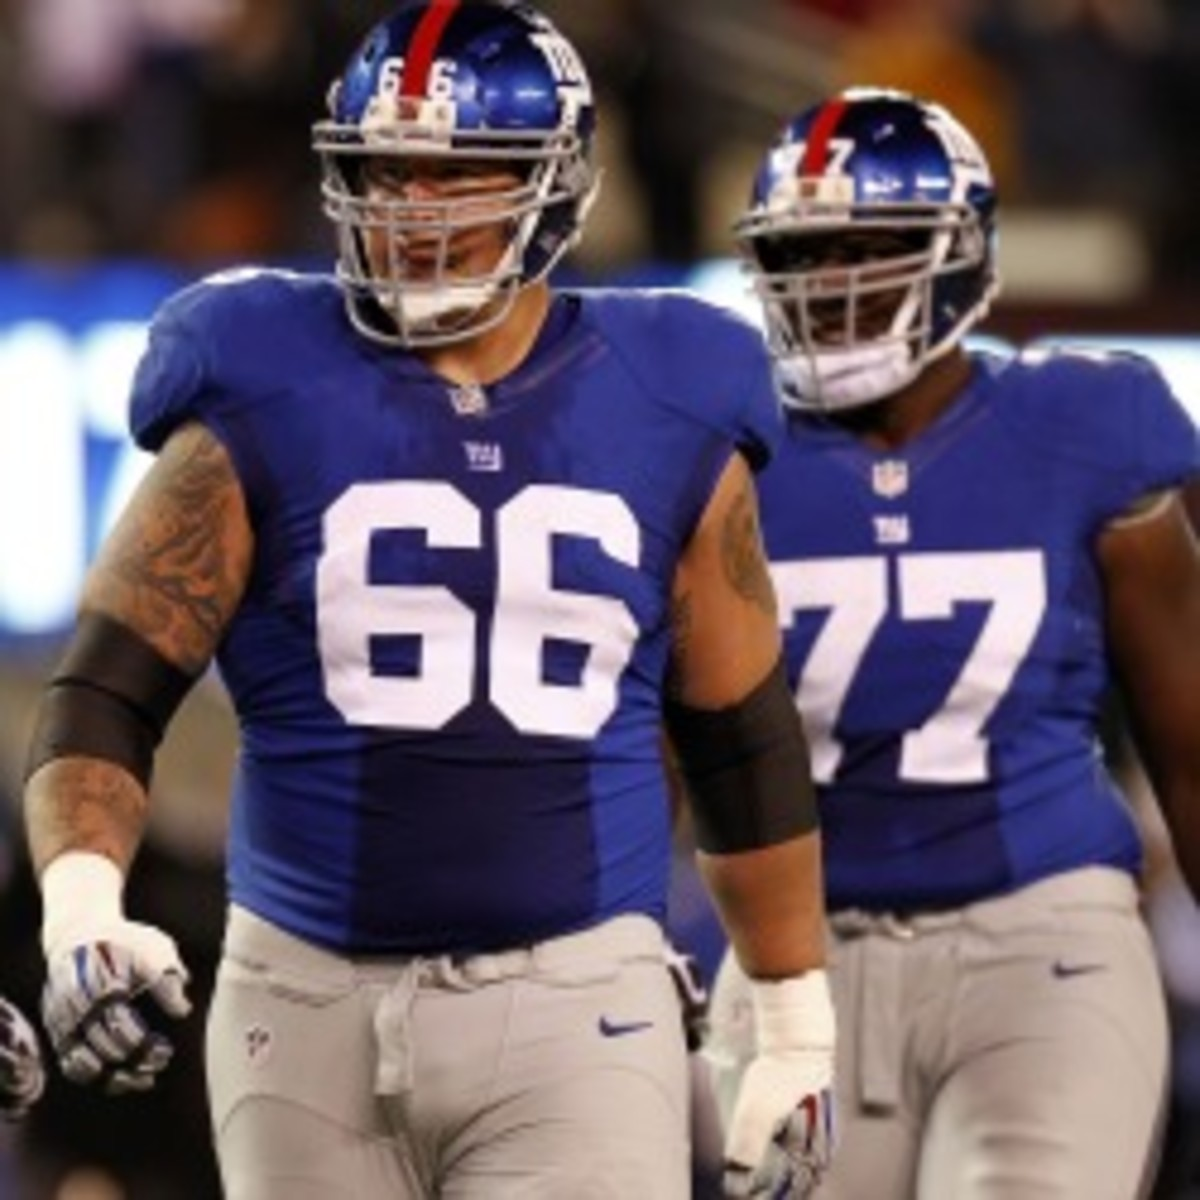 Giants right tackle David Diehl took a pay cut of $3.375 million to stay with the team. (Jeff Zelevansky/Getty Images)